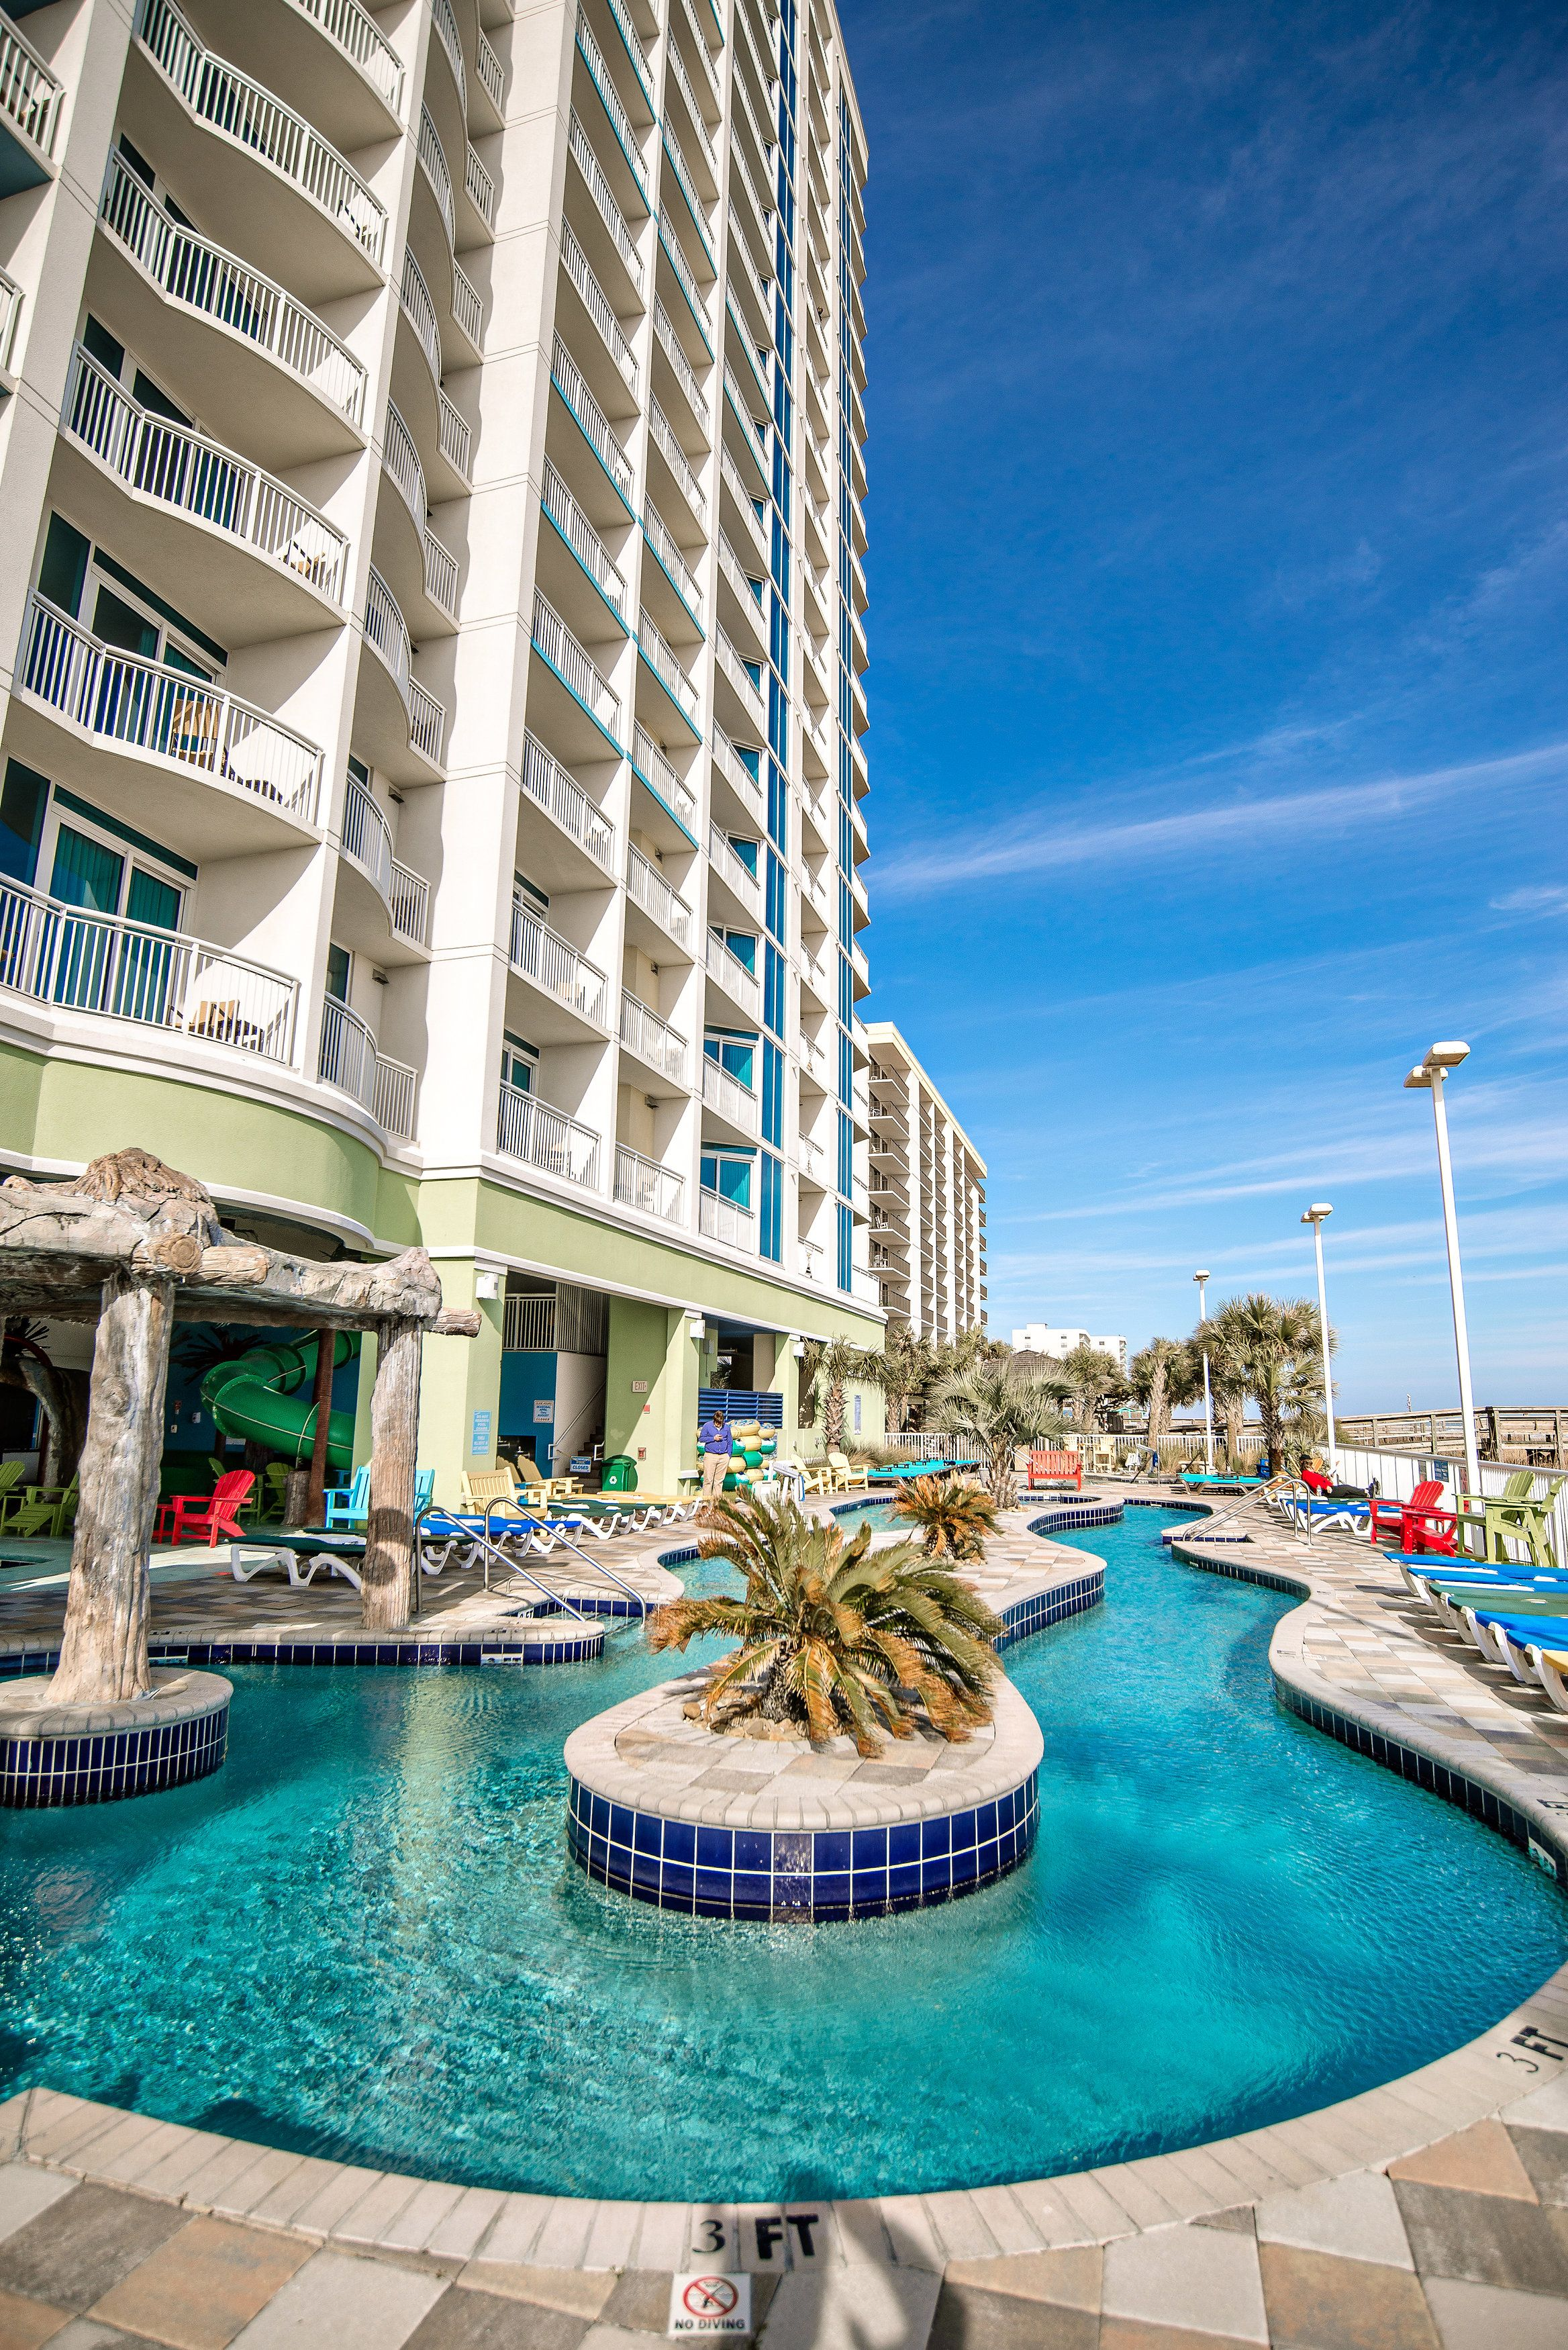 Come Sit But The Pool And Enjoy The North Myrtle Beach